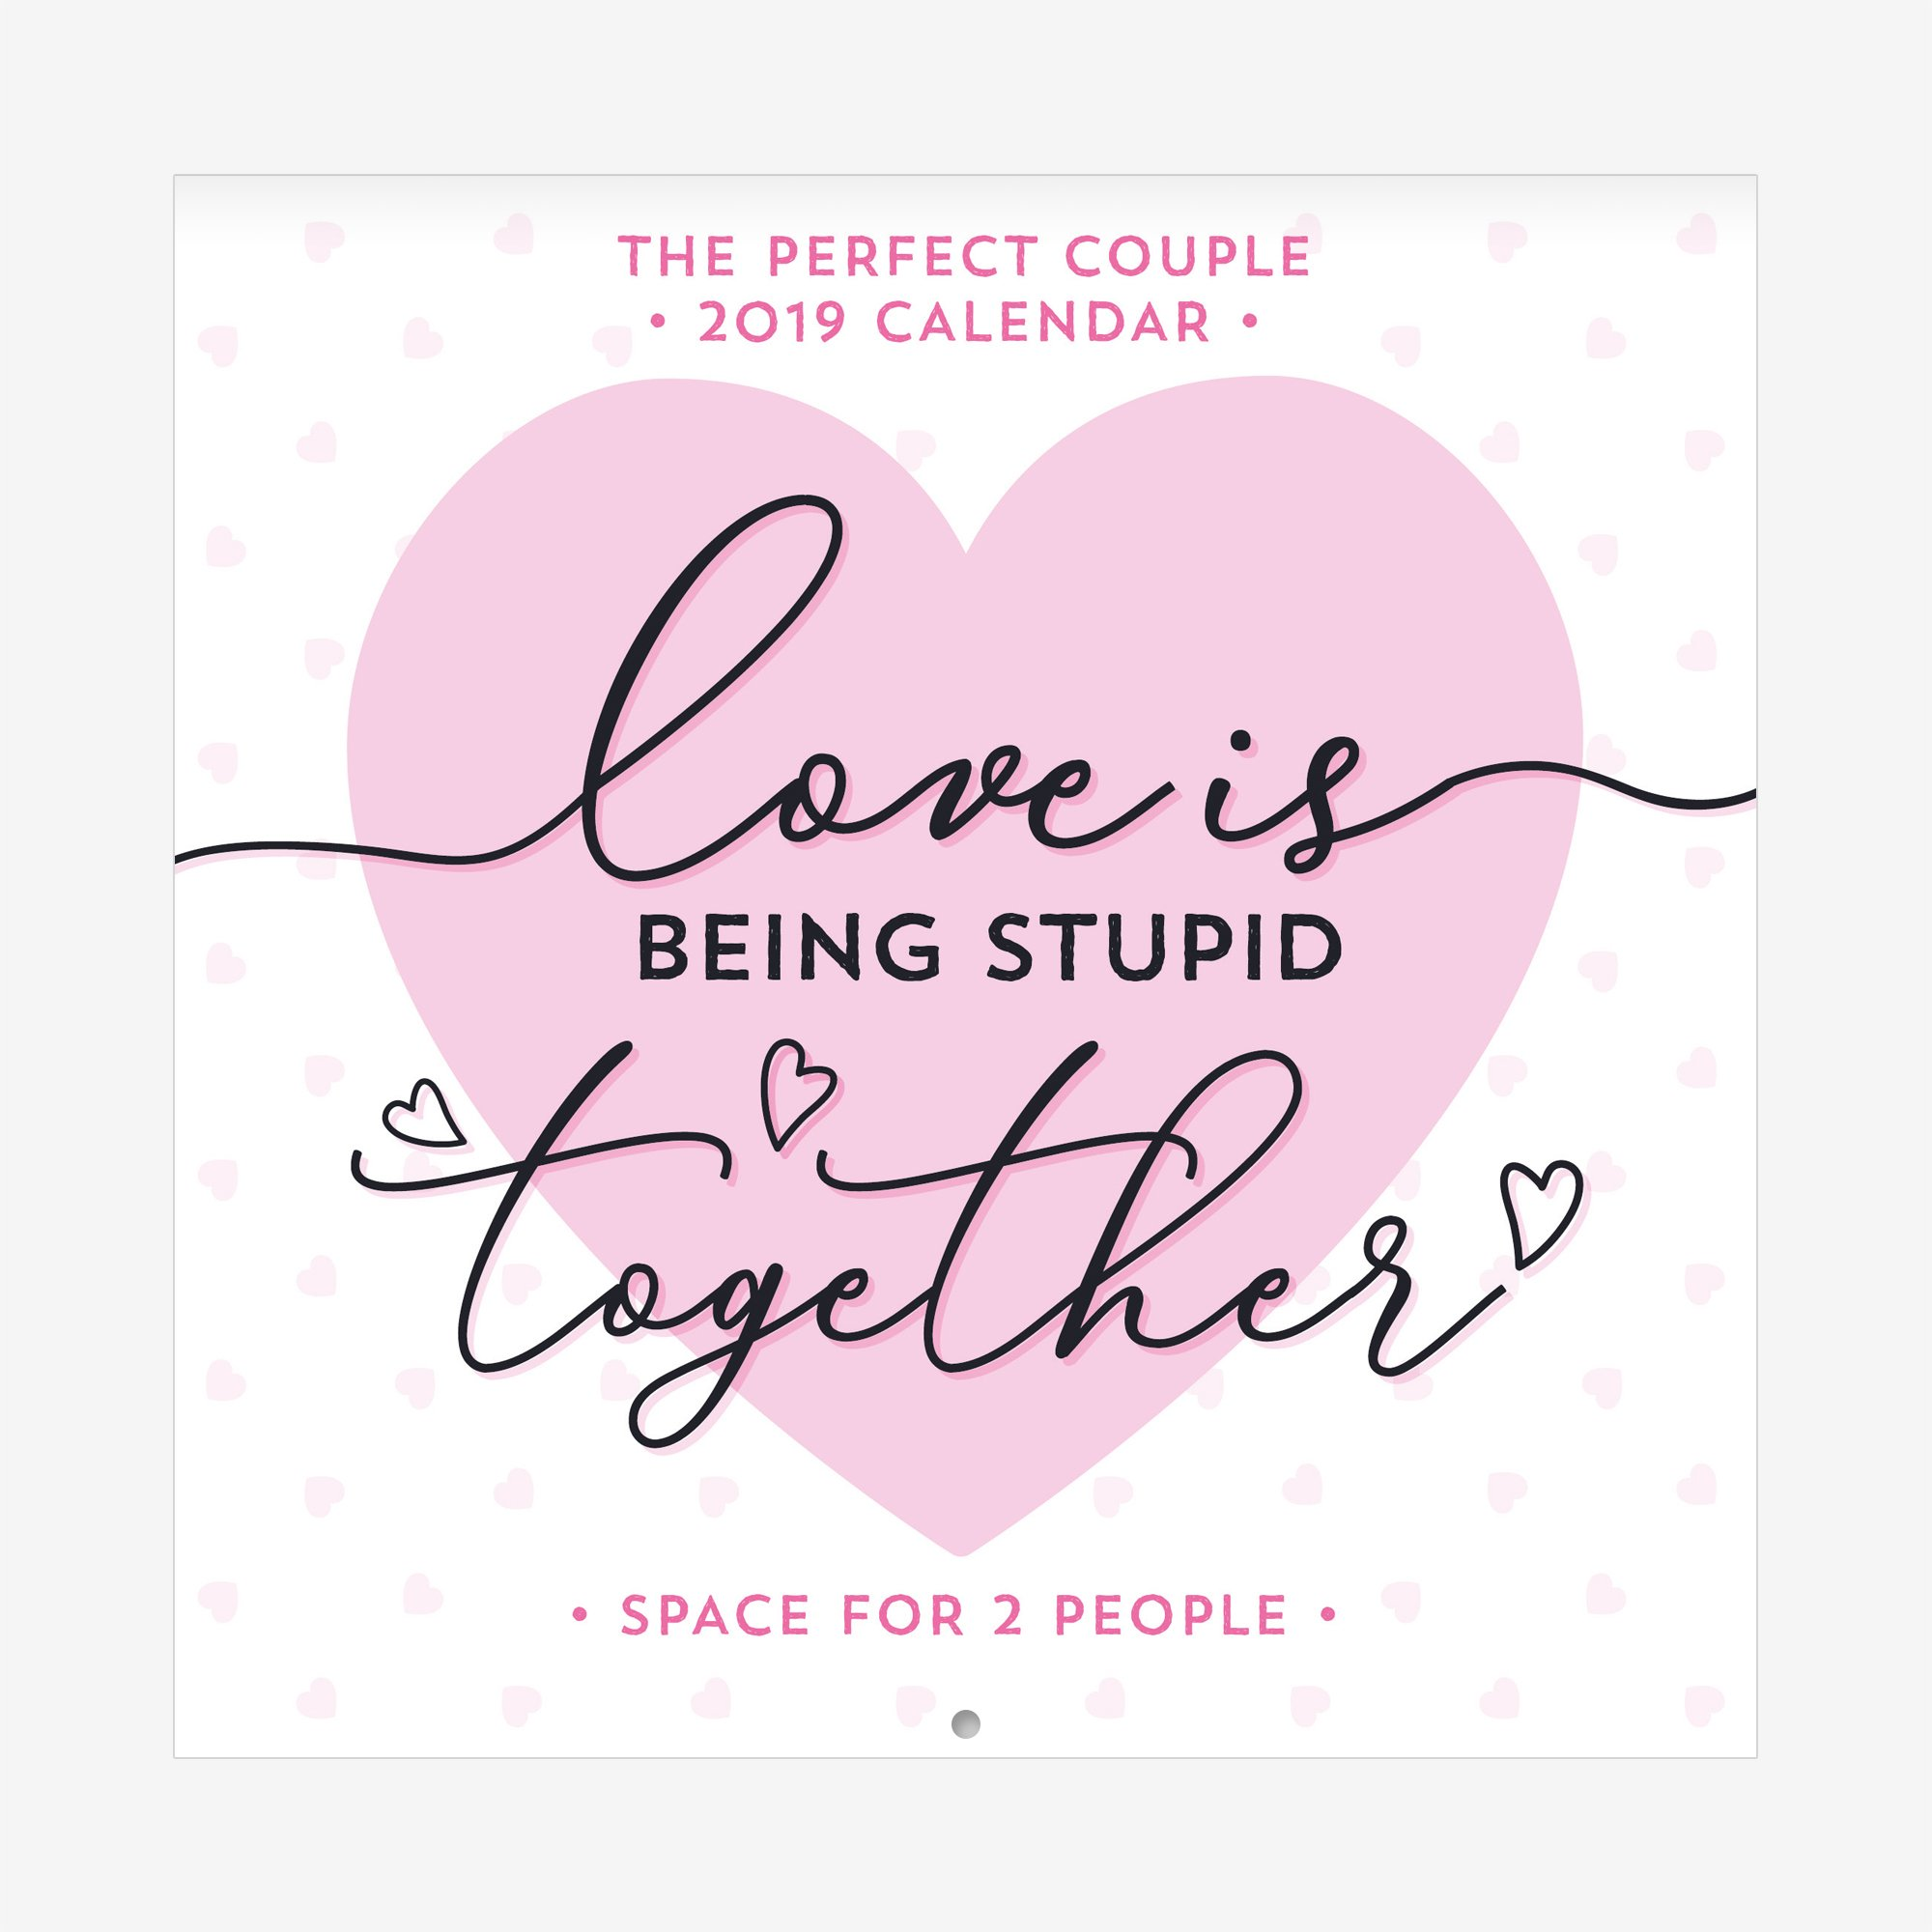 Calendario Legami.Legami Calendario Da Parete 2019 Dimensioni 18 X 18 Cm The Perfect Couple Agenda Perfetta